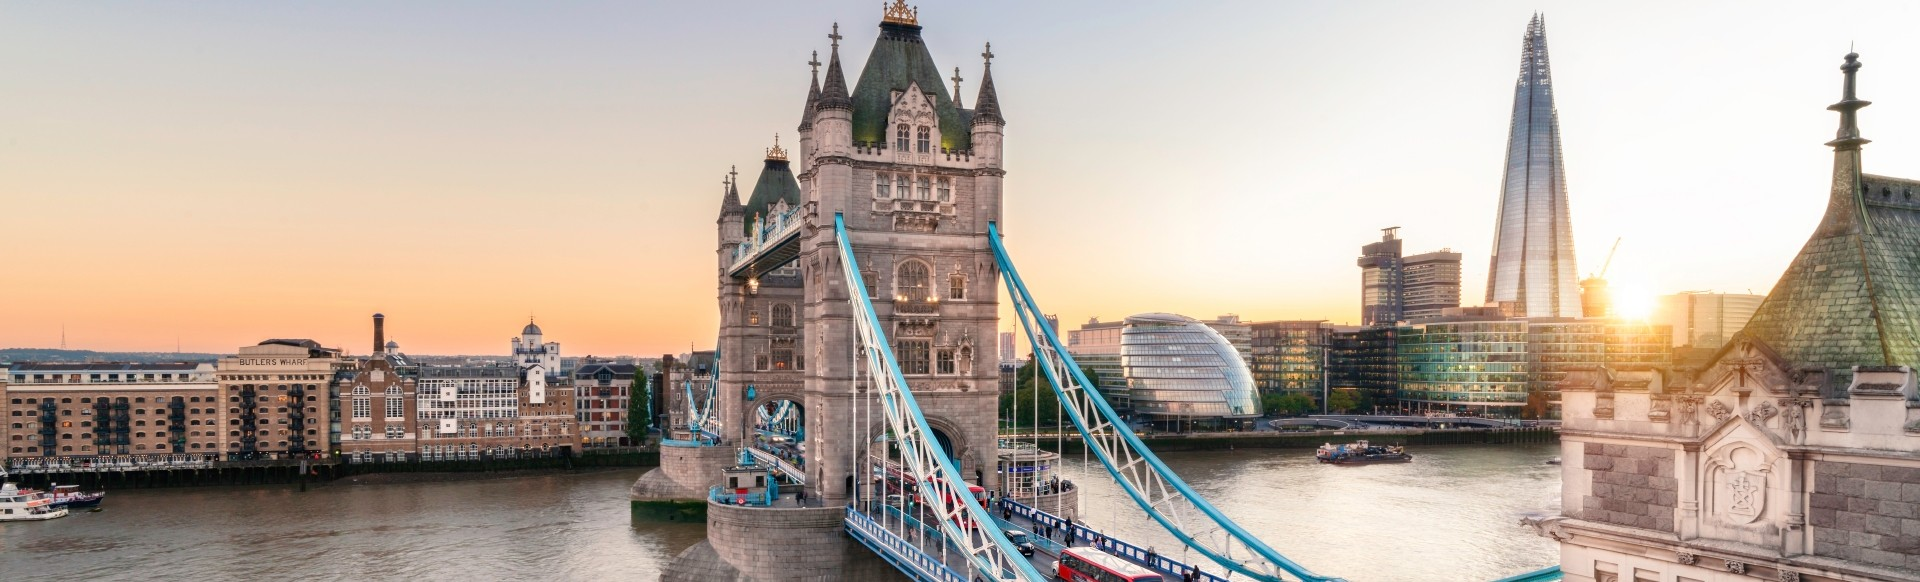 Sunset over Tower Bridge and the river Thames.